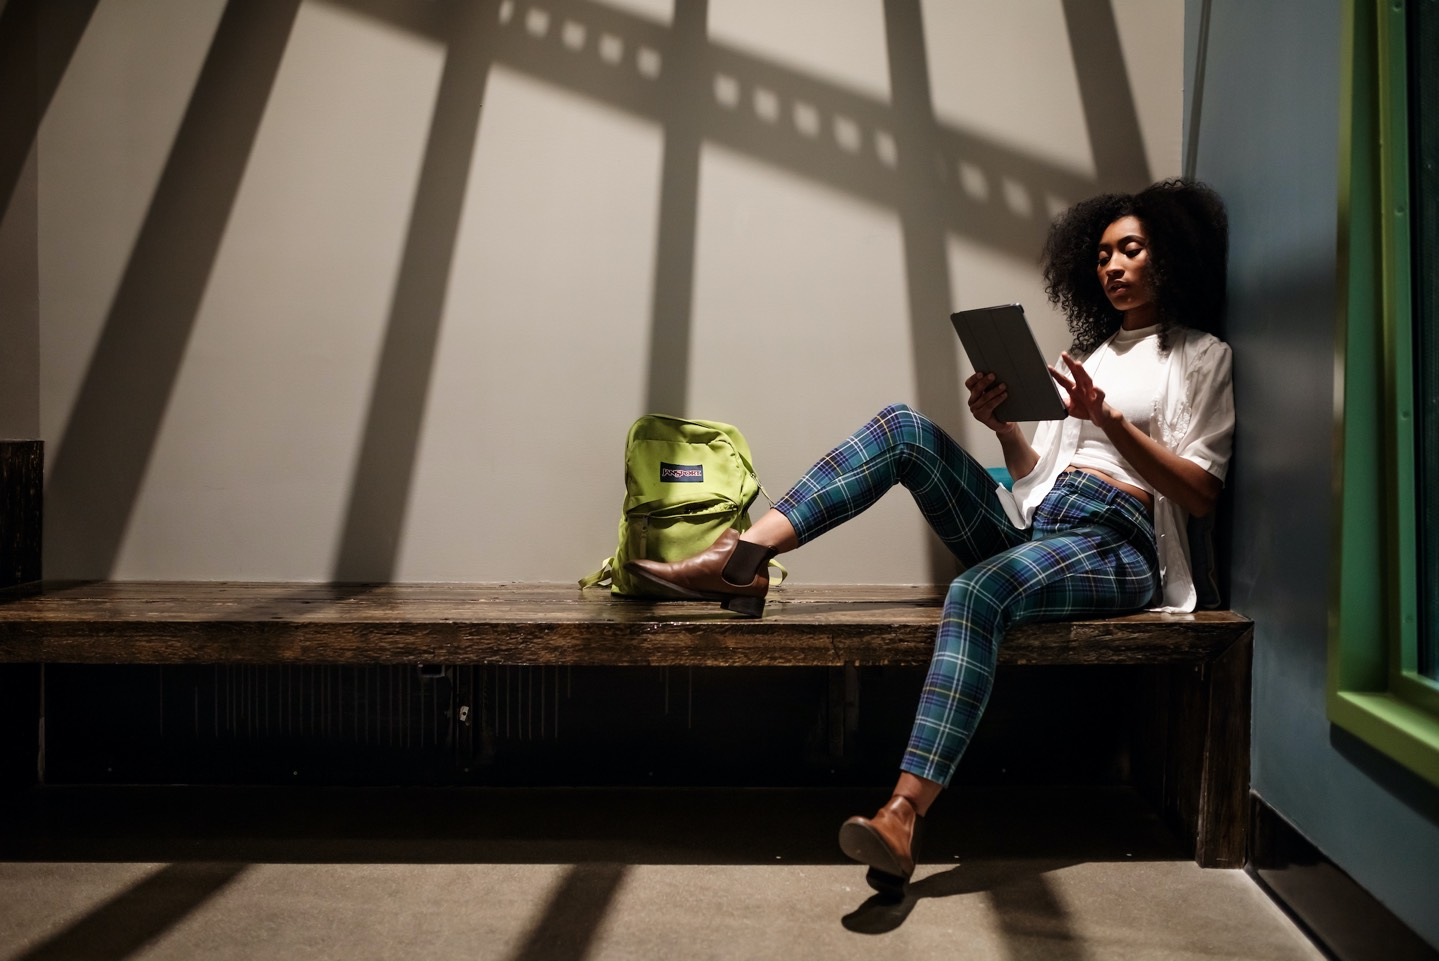 Stylish woman holding tablet & sitting on a bench